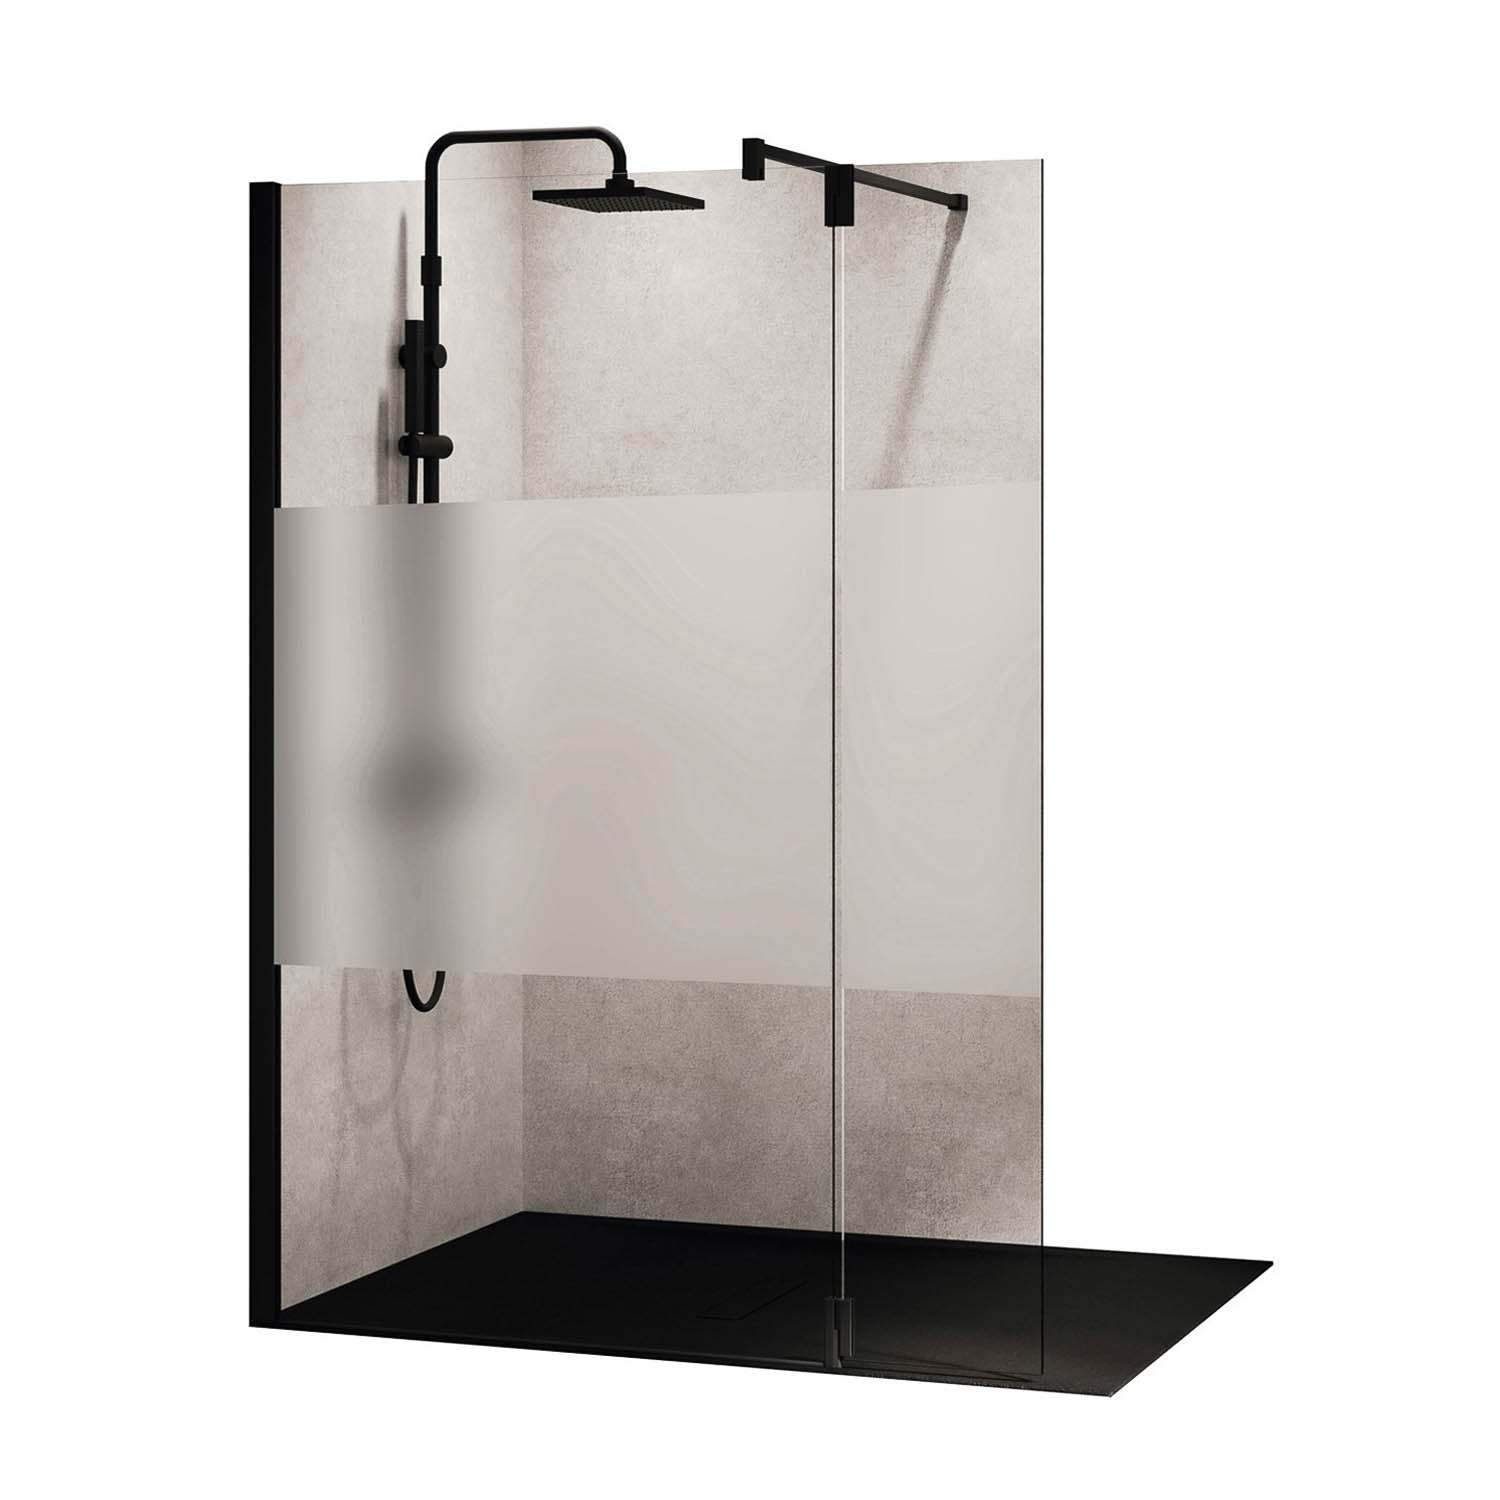 570-600mm Ergo Wet Room Screen Satin Band Glass with a matt black finish on a white background